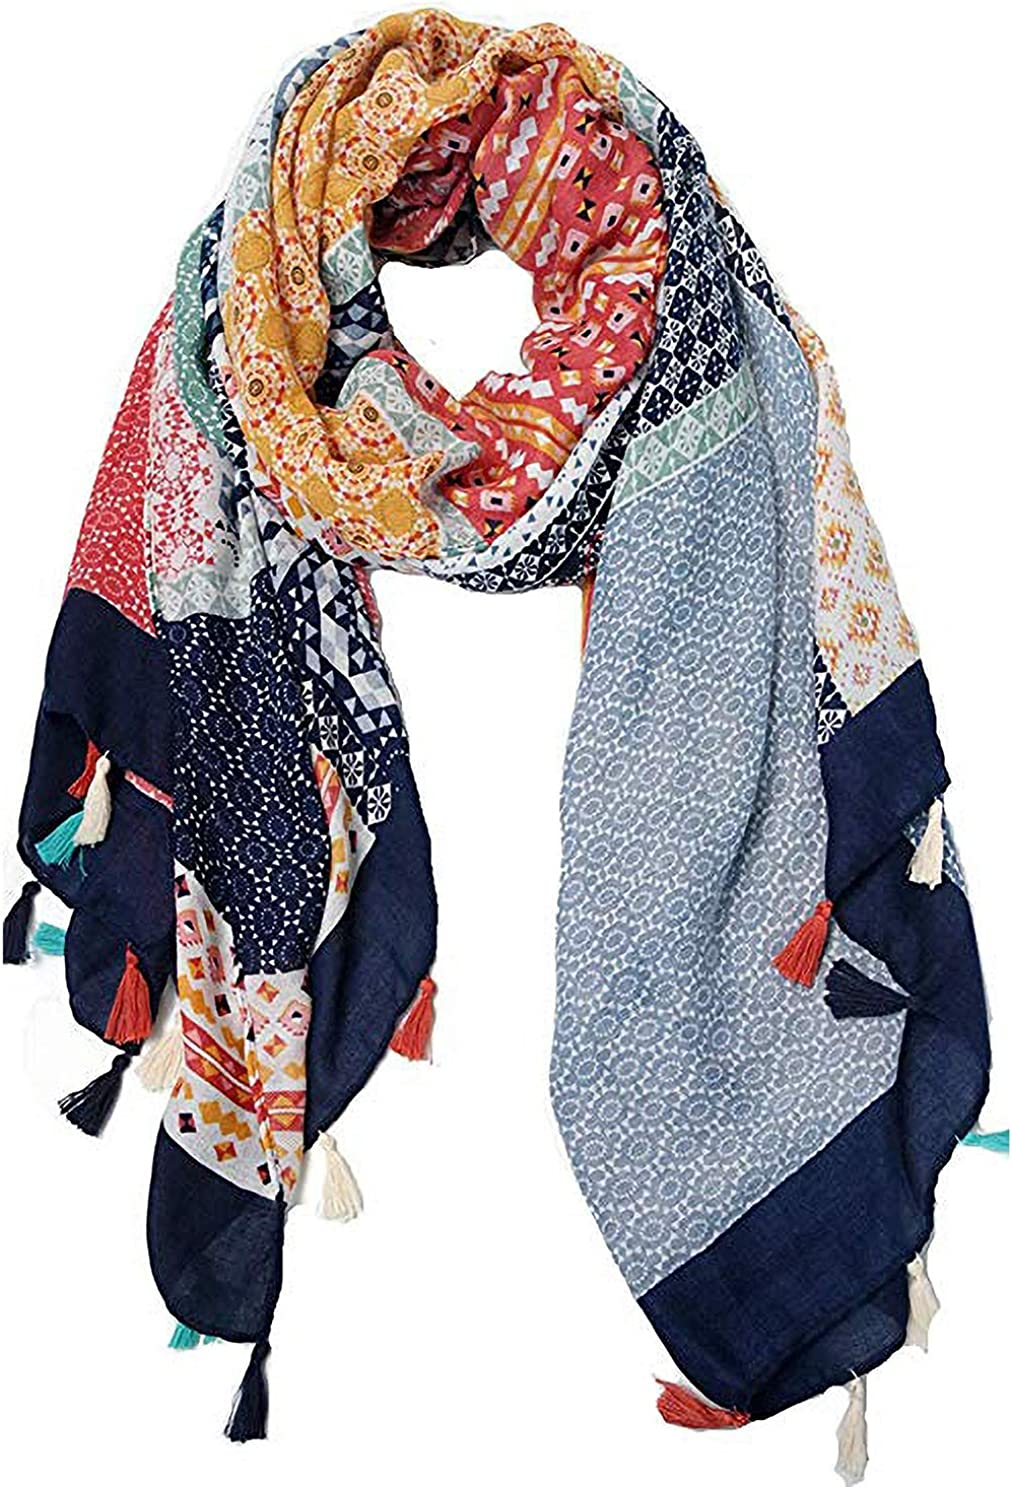 Scarves for Women Large Lightweight Floral Flower Spring Scarf Fashion Wrap Shawls Oversized Shawl Cape by AHYUAN